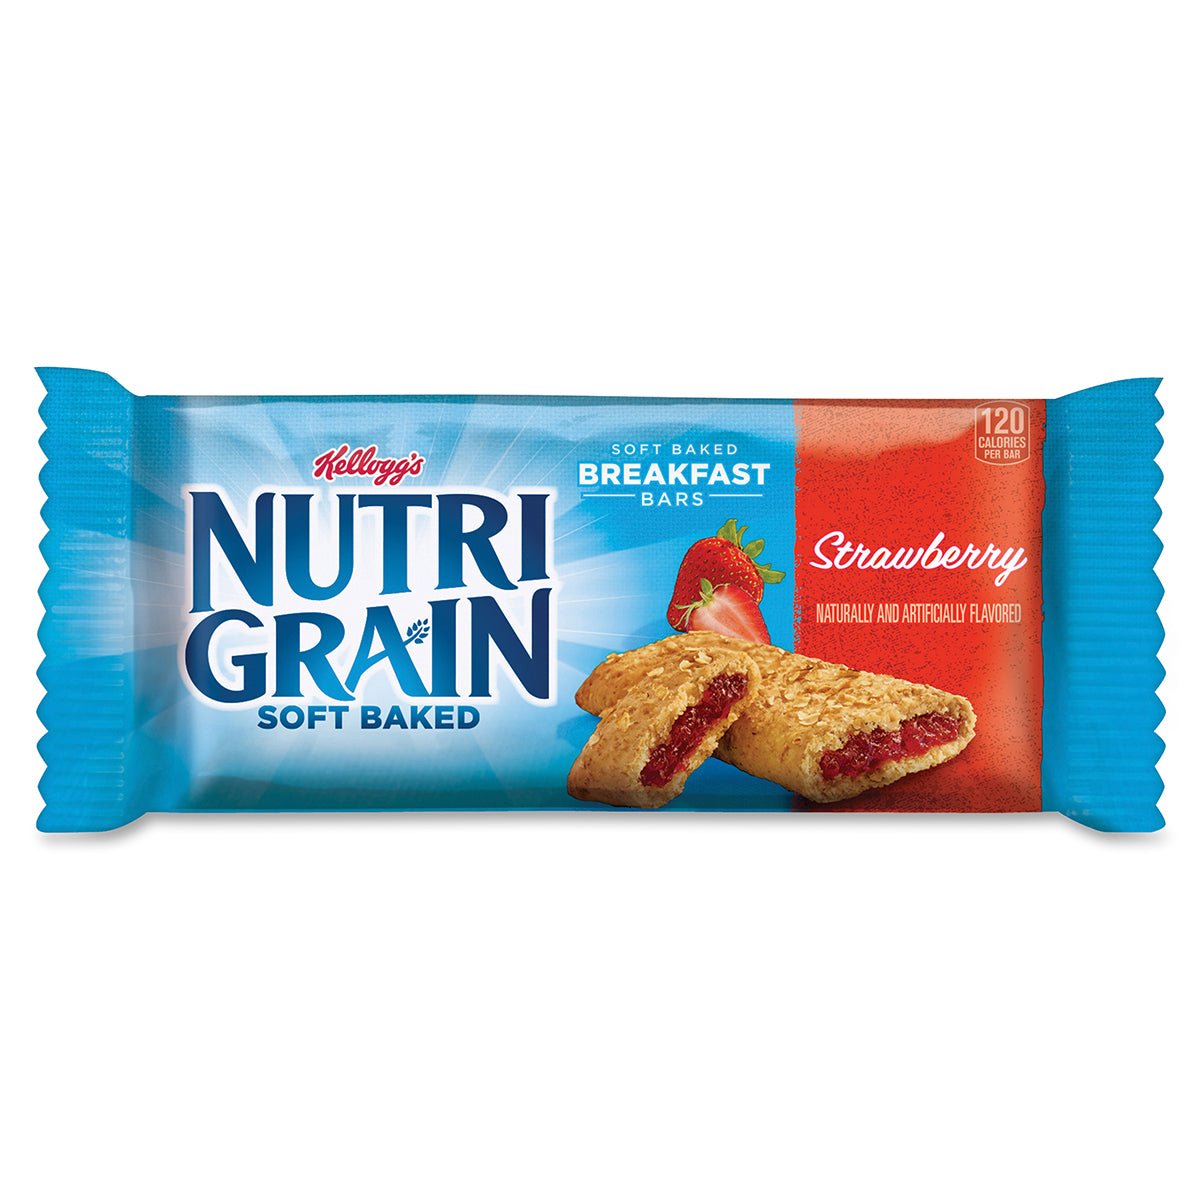 Nutri Grain Strawberry - 1.3oz